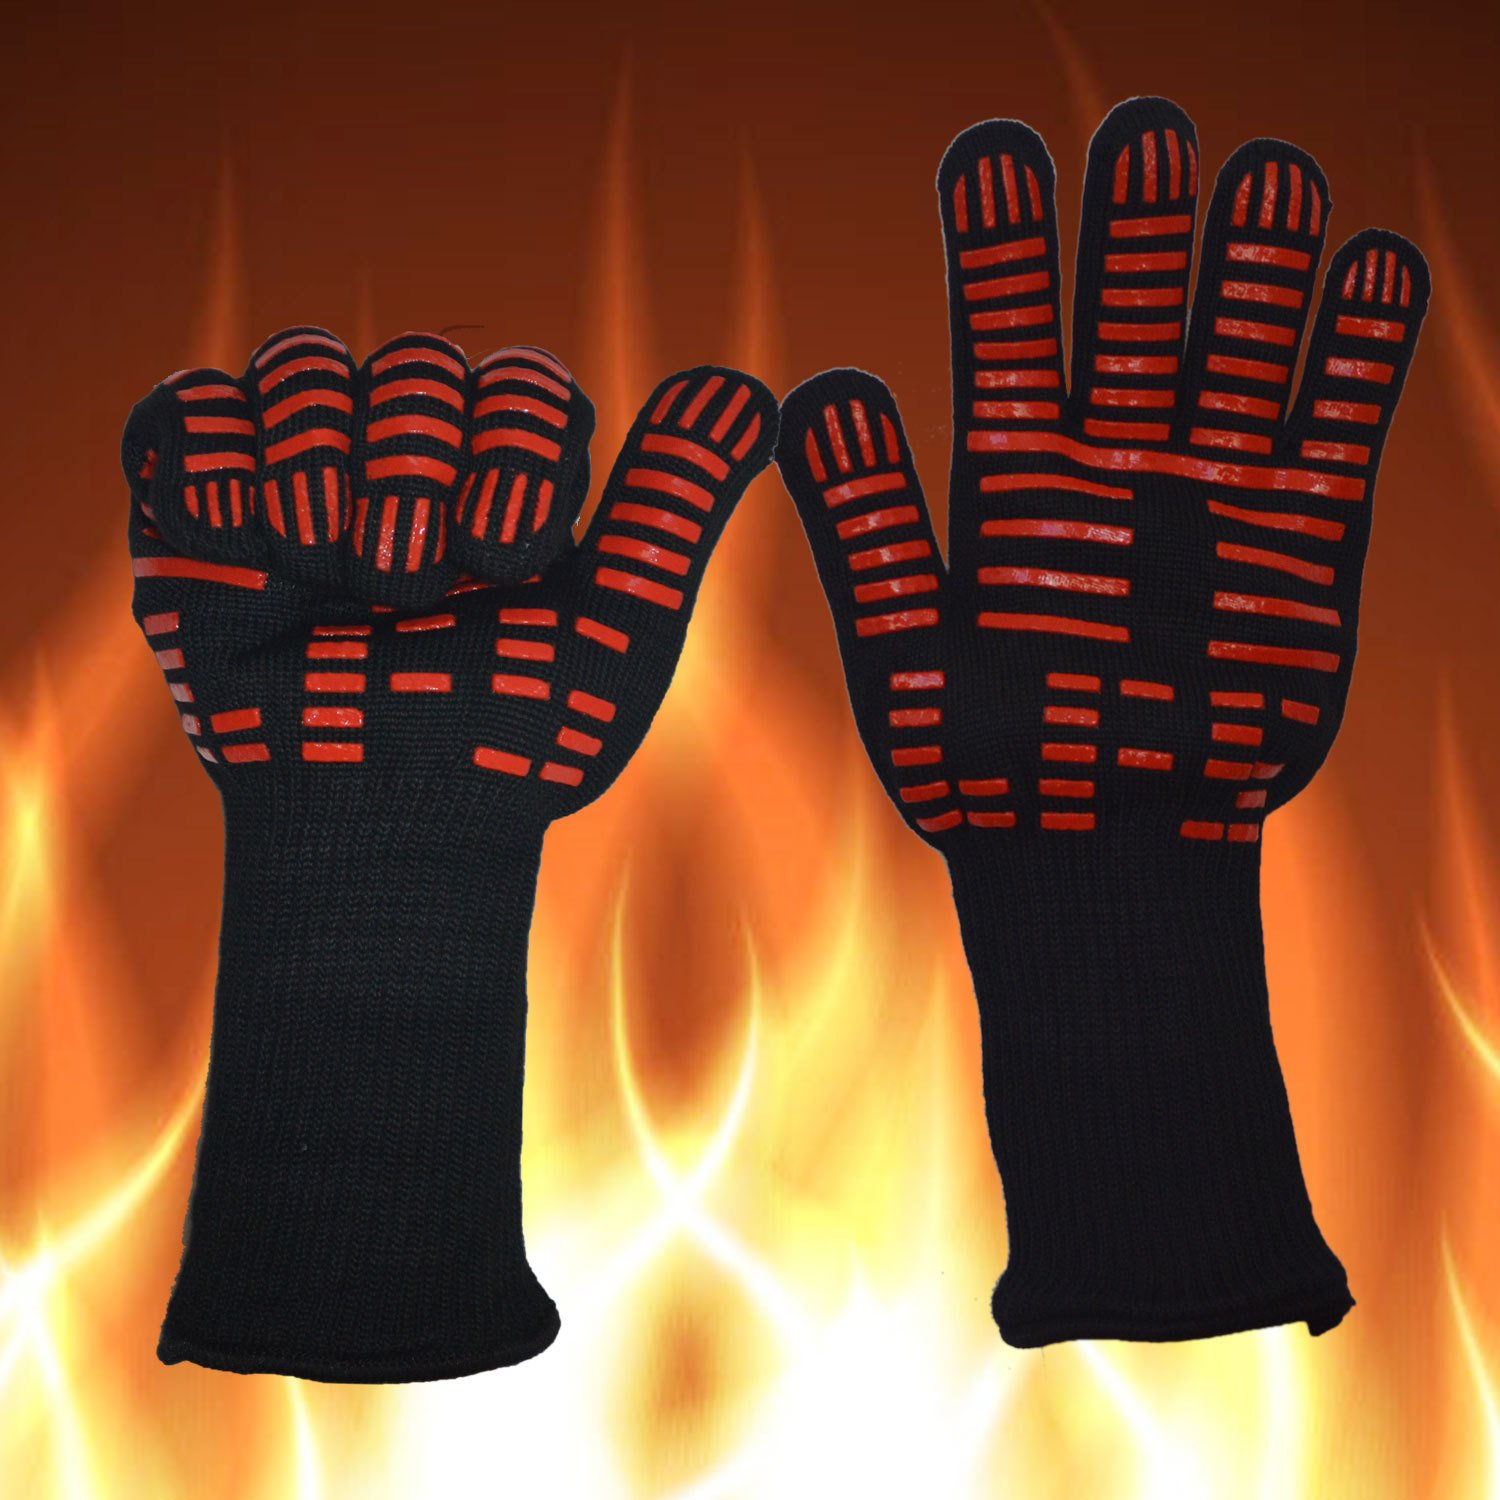 BBQ Gloves Grill Gloves Kitchen Oven Mitts 932°F Extreme Heat Resistant Gloves 14'' Long Cut Resistant and Forearm Protection baking & Grilling Gloves (1 Pair) by ITESTOO (Image #6)